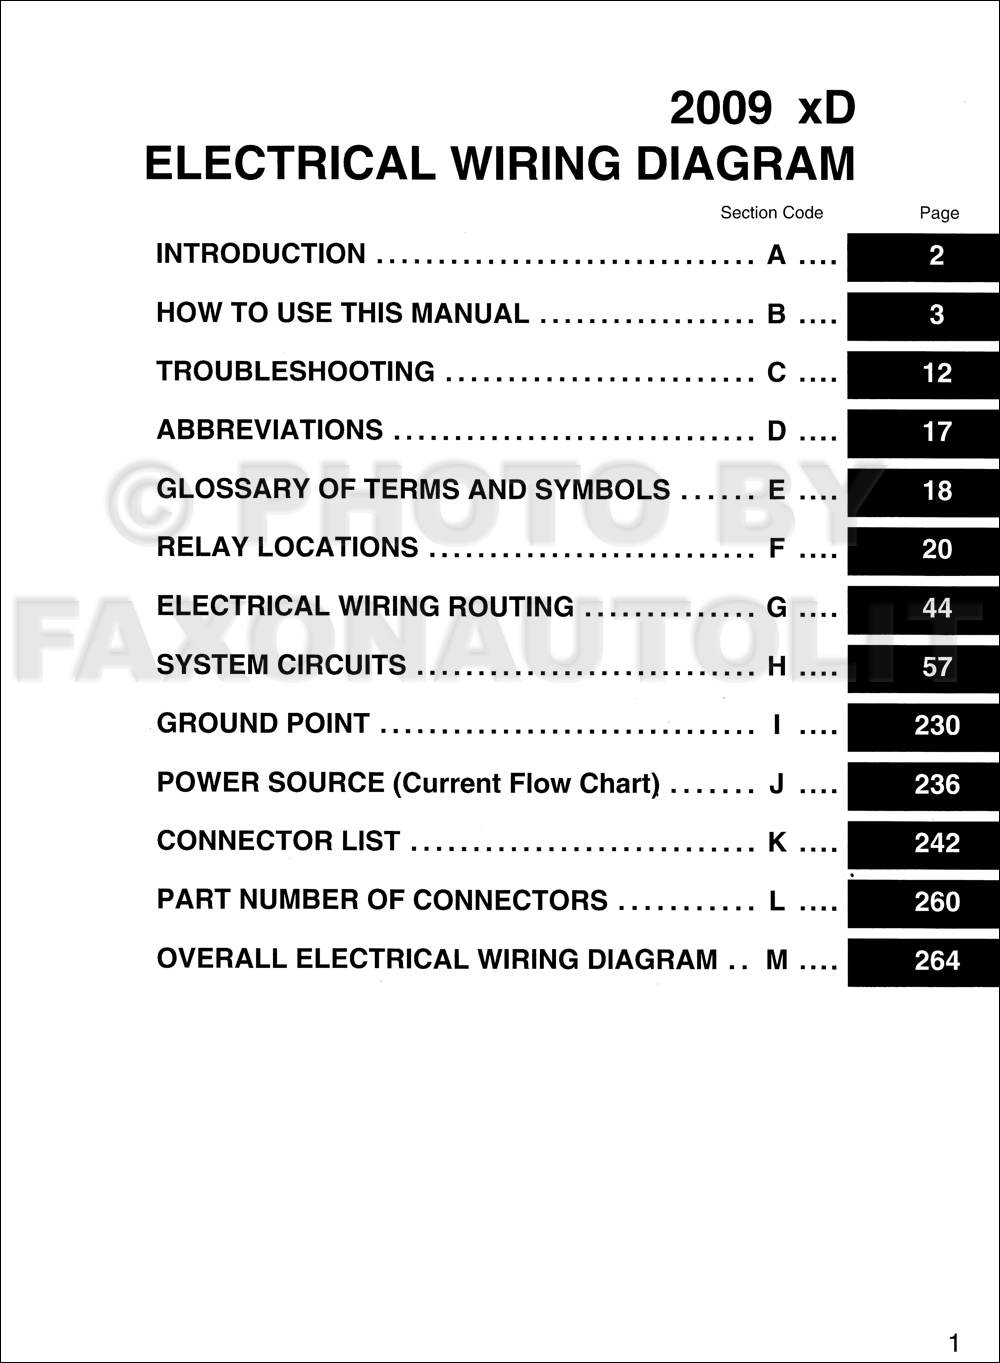 Venza Wiring Diagram Data Schematic 2013 Toyota 2009 Scion Xd Detailed Schematics Rh Keyplusrubber Com Electrical